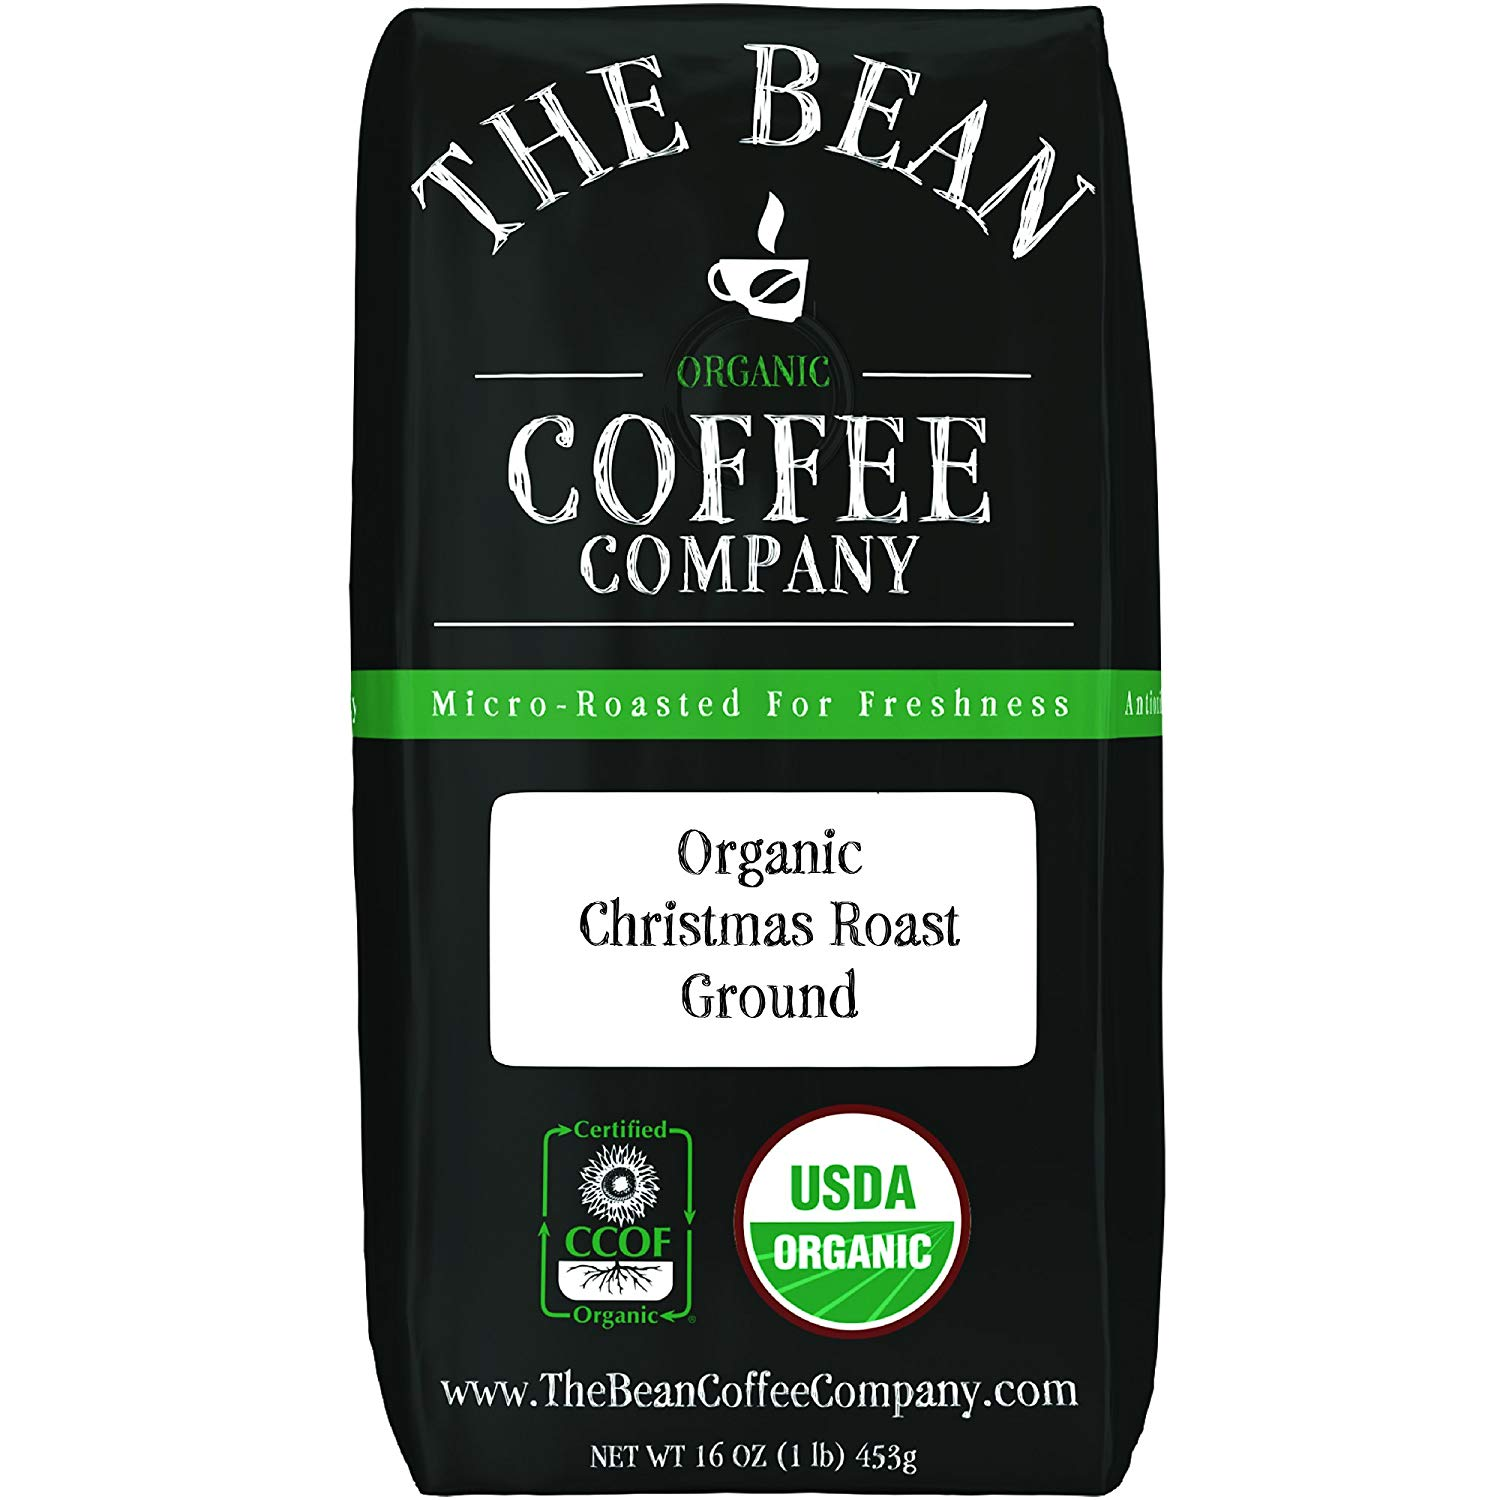 The Bean Coffee Company Organic Christmas Roast, Dark Roast, Ground, 16-Ounce Bag